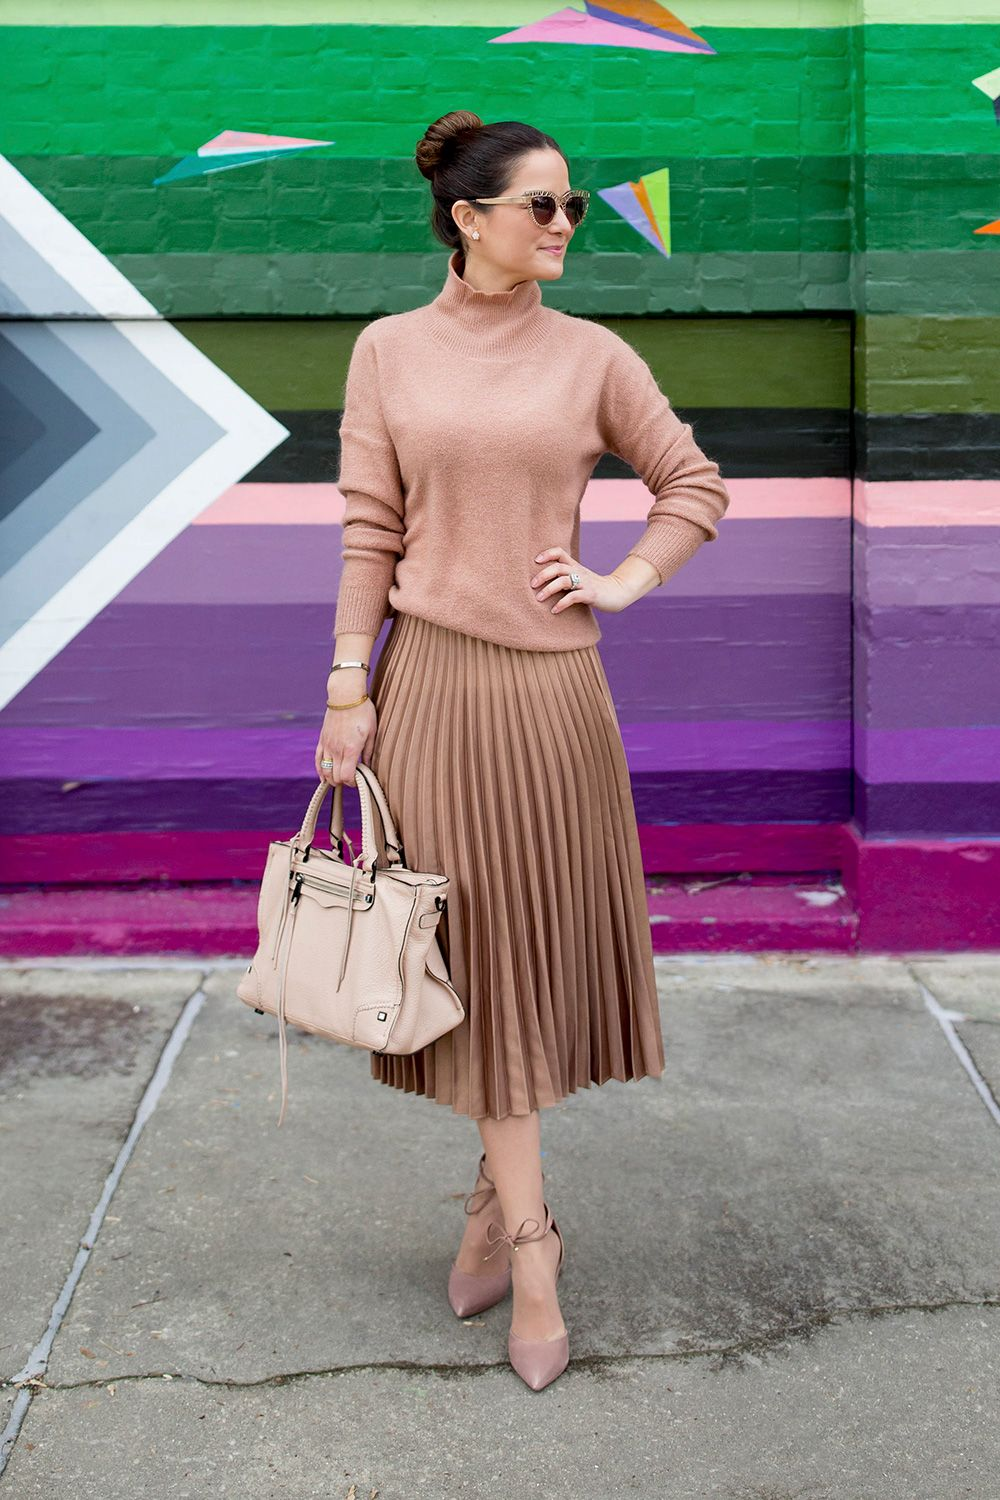 cf84860b0 Turtleneck Sweater + Pleated Midi Skirt (I really like how she tied in the  same hues of color together, and it really looks good)